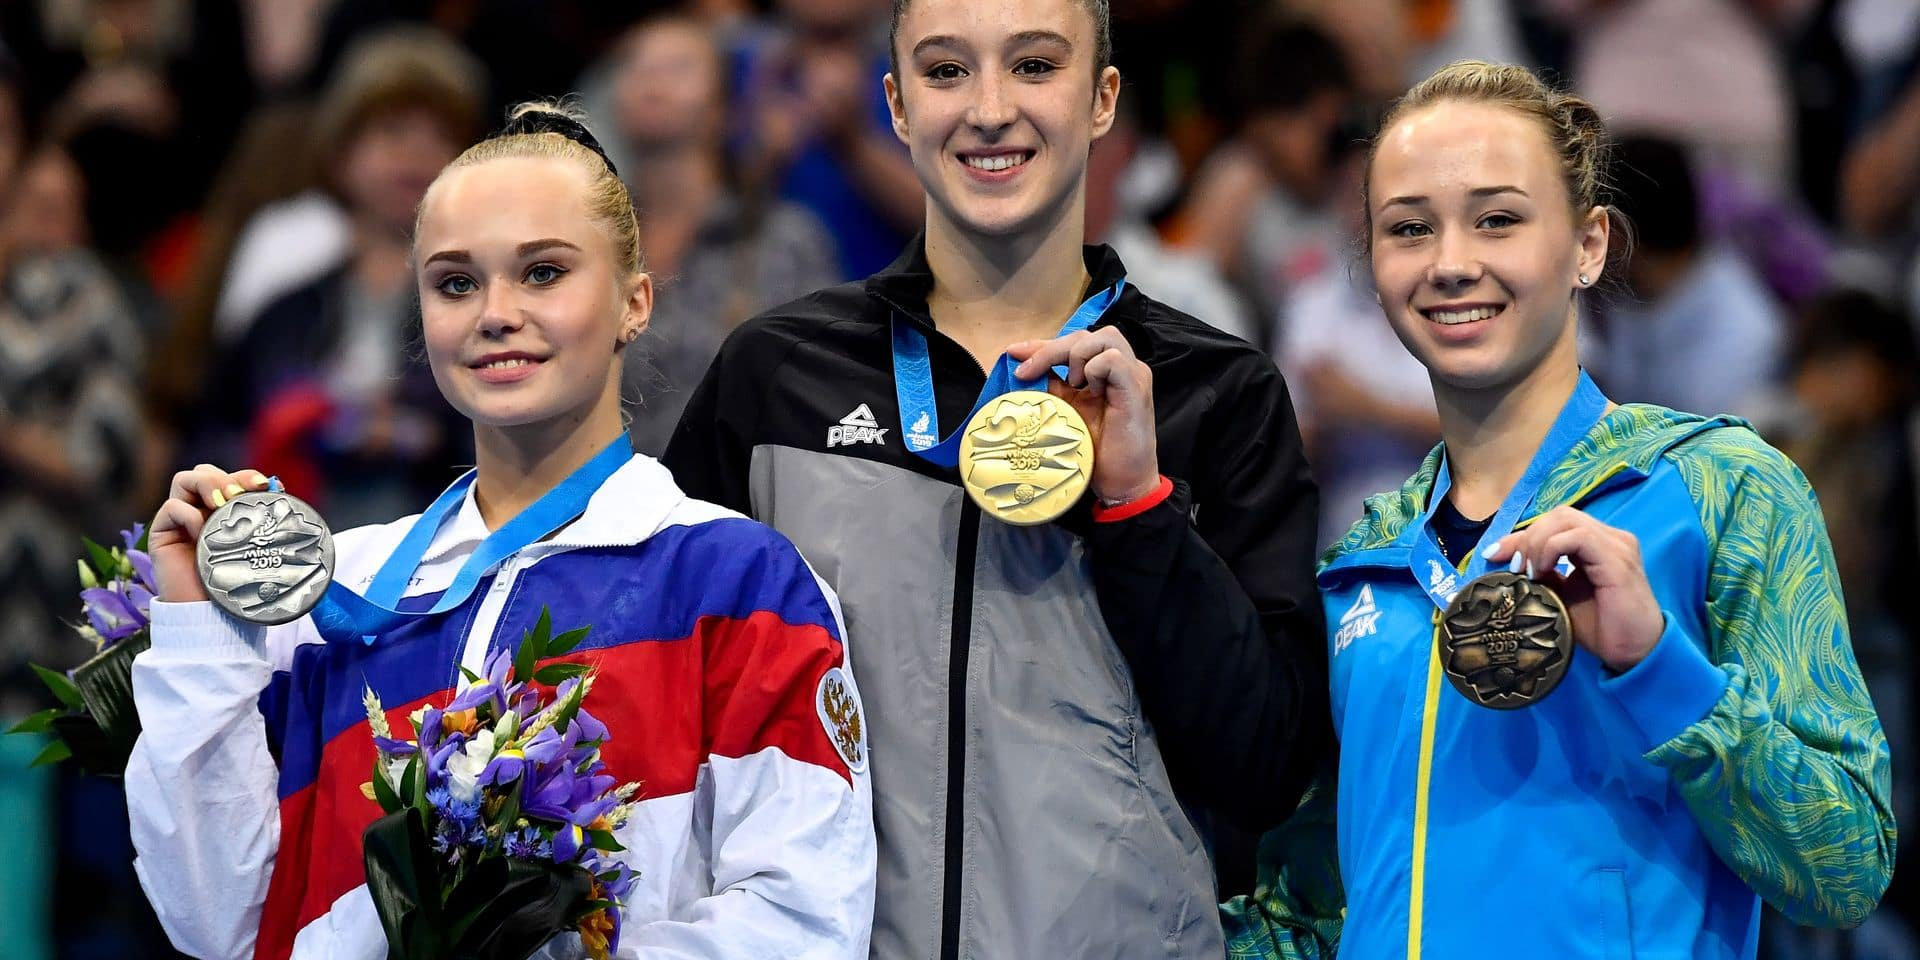 Russian Angelina Melnikova, winner of the silver medal, Belgian gymnast Nina Derwael, winner of the golden medal and Ukraine's Diana Varinska, winner of the bronze medal pictured on the podium after the beam final of the women's artistic gymnastics event at the European Games in Minsk, Belarus, Sunday 30 June 2019. The second edition of the 'European Games' takes place from 21 to 30 June in Minsk, Belarus. Belgium will present 51 athletes from 11 sports. BELGA PHOTO DIRK WAEM